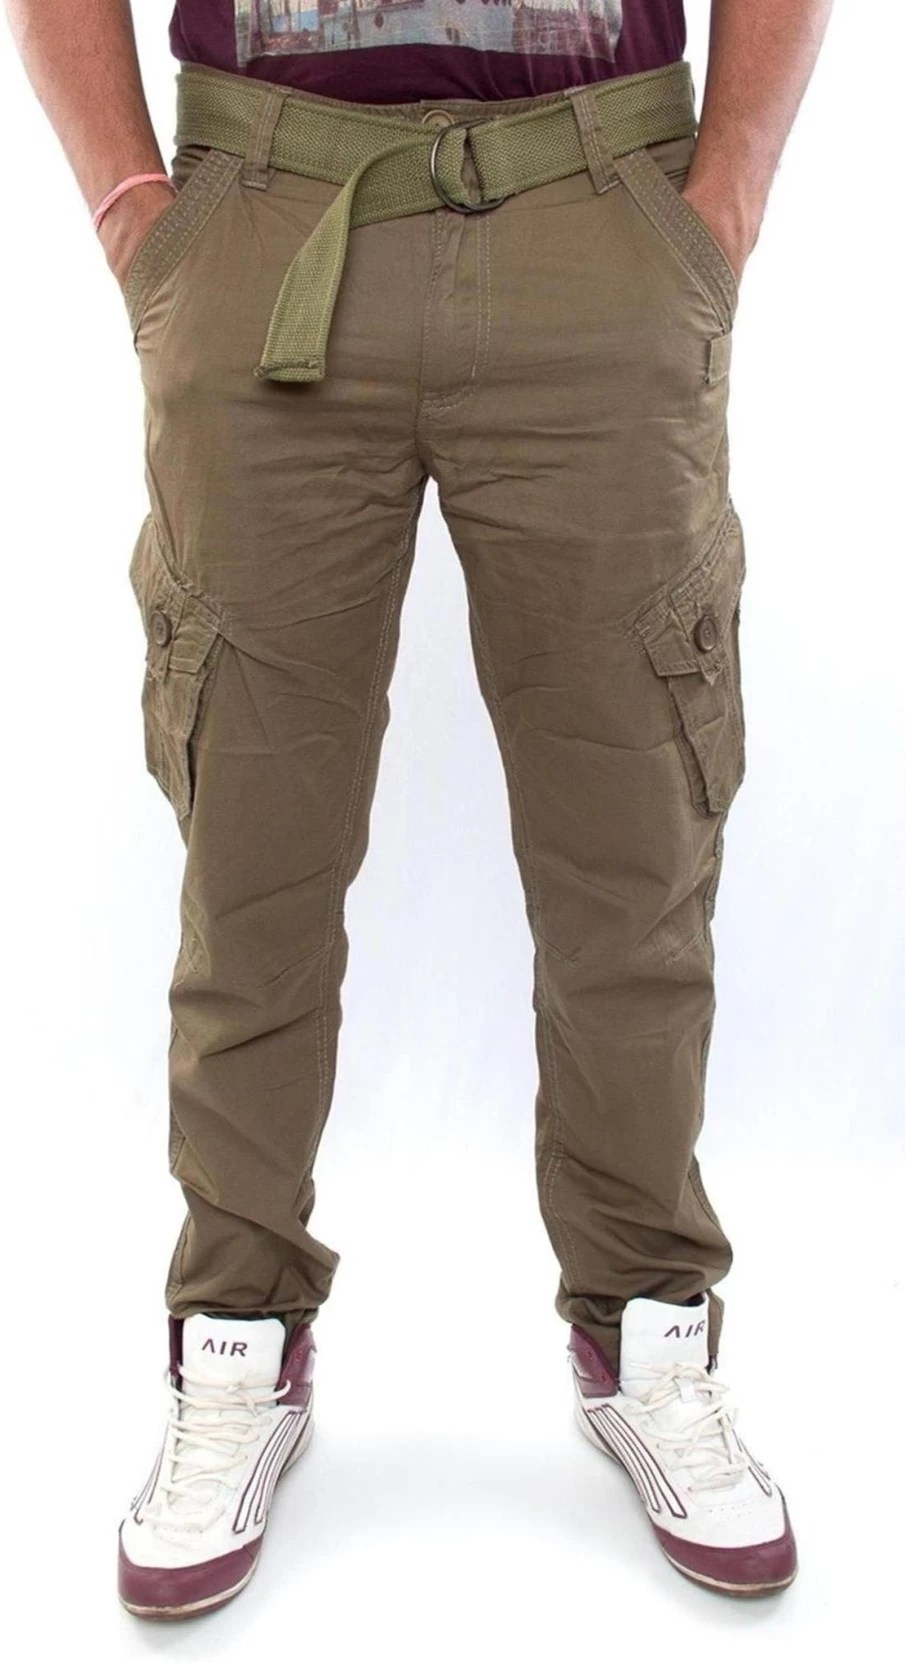 Tom Railor Tom Tailor Men S Cargos Buy Green Tom Tailor Men S Cargos Online